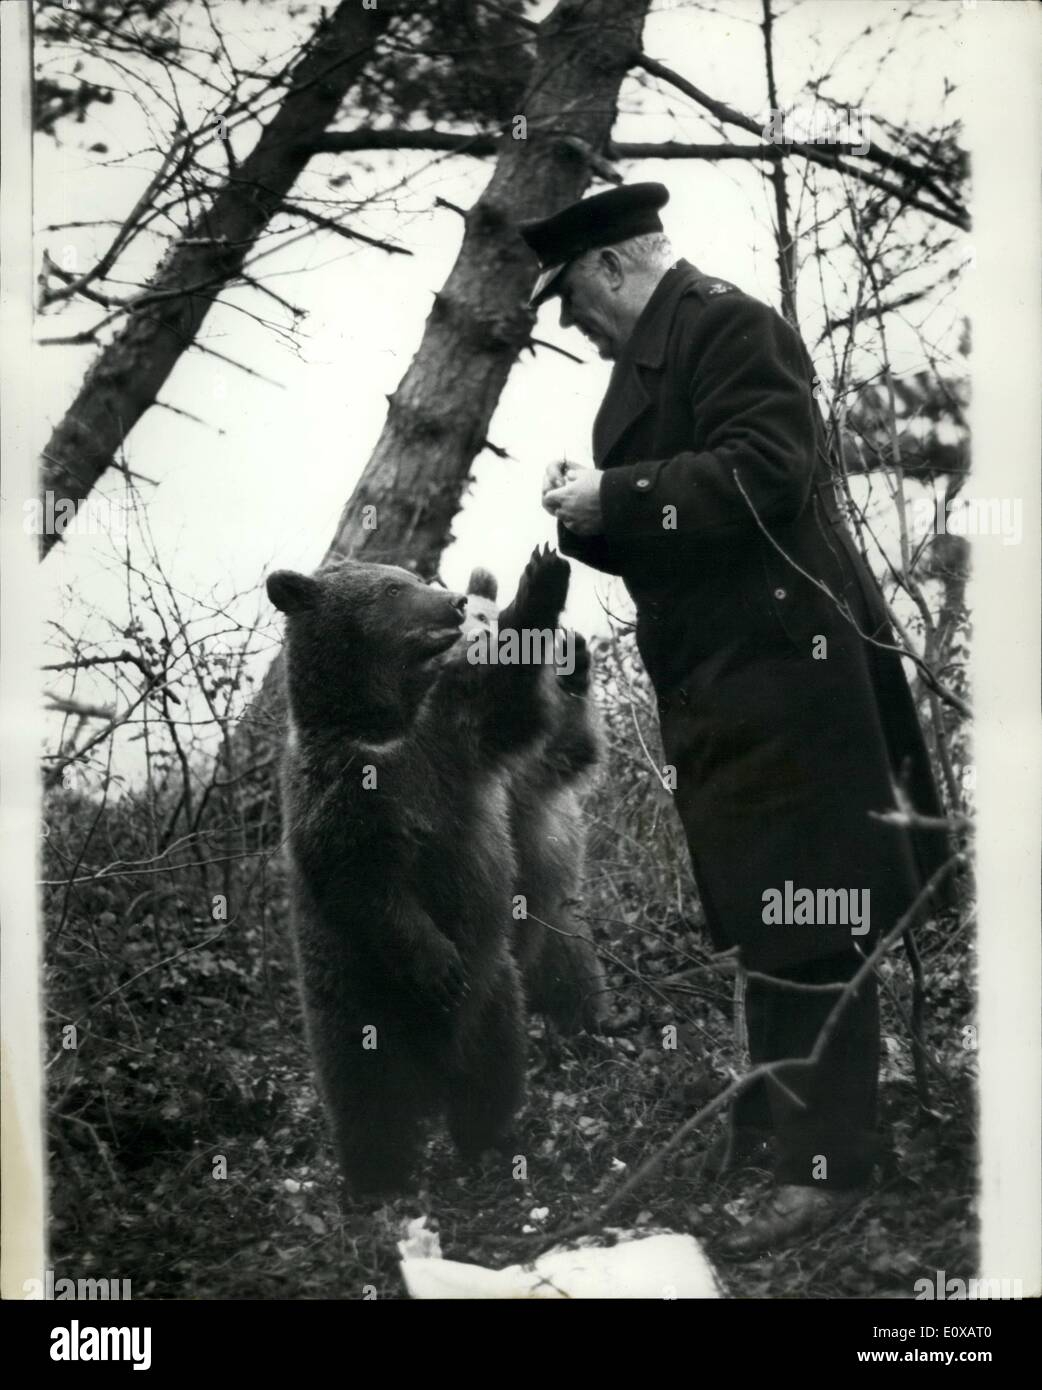 Jan. 01, 1966 - Bears Still at Large on the Isle of Wight. Nikita and Valentina, two Russian bears, have for 12 days evaded capture, after escaping from a children zoo at Ryde, Isle of Wight. So far they have defied the efforts of assorted police, R.S.P.C.A. and zoo men to catch them. Yesterday, Mr. Harold Slater, the island's bear defying R.S.P.C.A - Stock Image